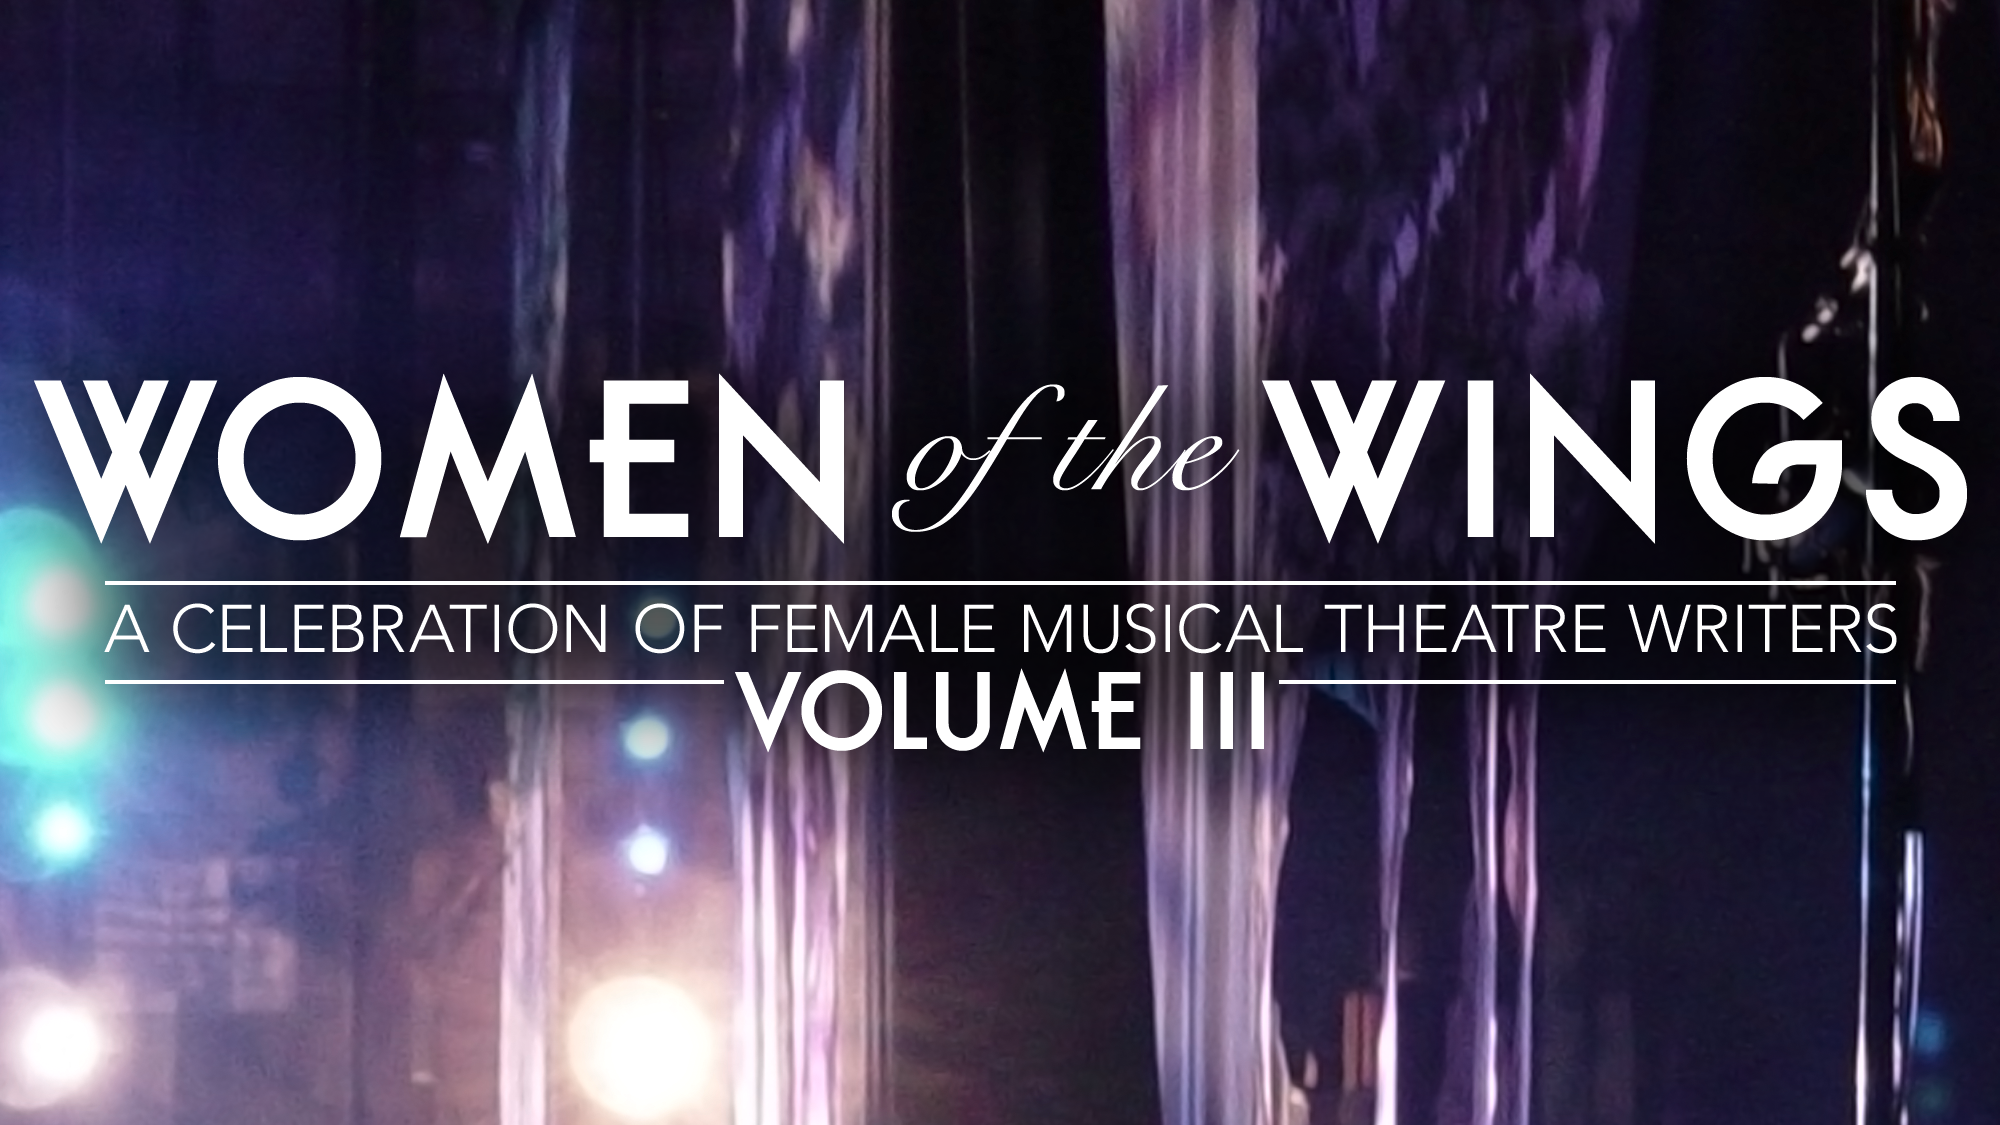 Women of The Wings Volume III: A Celebration of Female Musical Theatre Writers logo